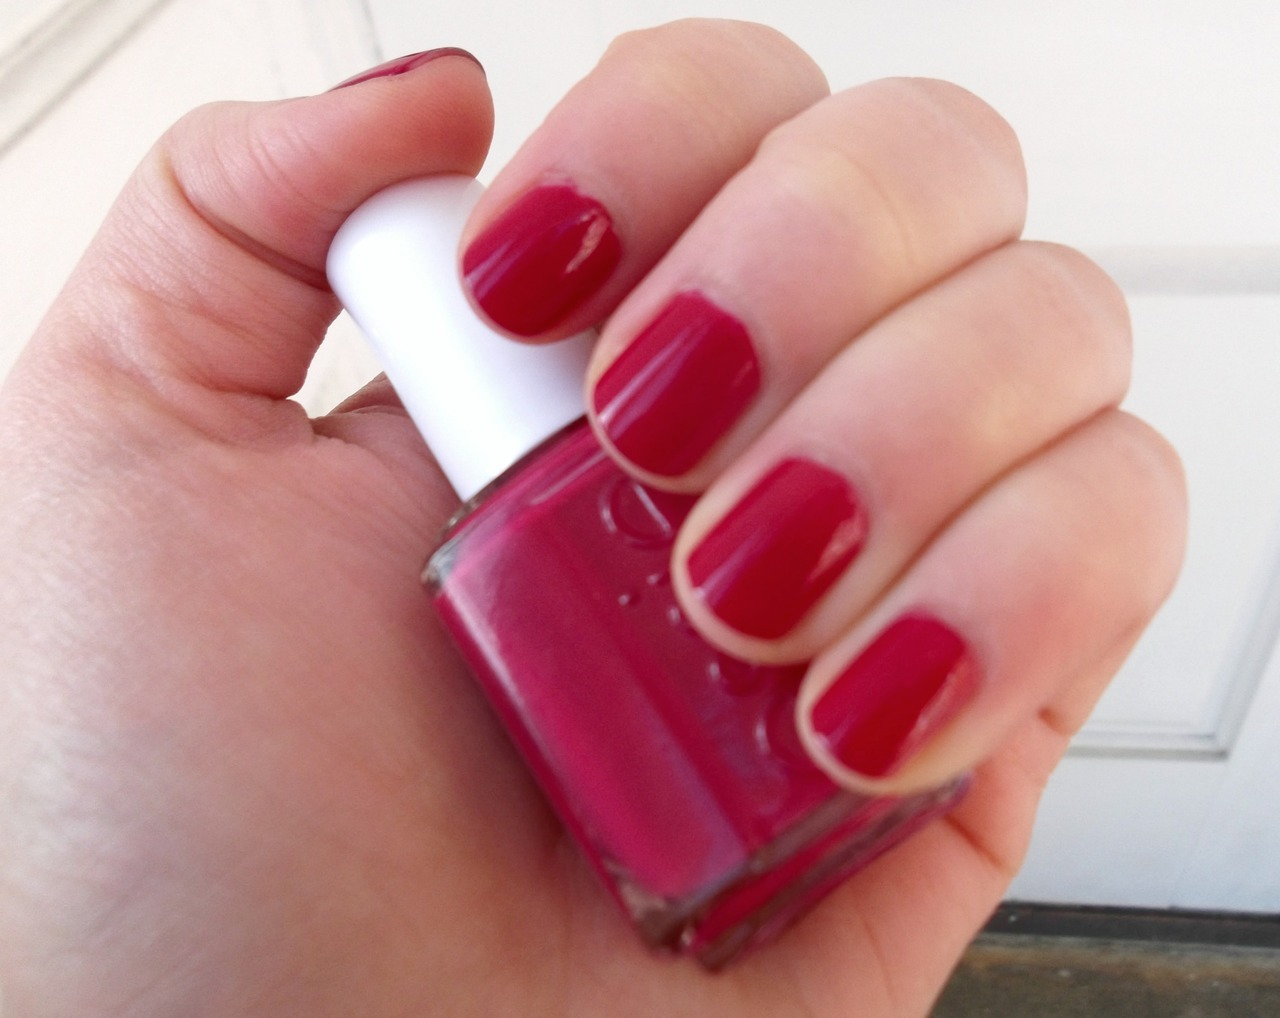 Today's Nails: Essie Plumberry Happy December! As nothing is more seasonally-appropriate than red nail polish, I thought I'd share Plumberry, a vibrant raspberry red. This is the only red I own and it honestly reminds me more of summer than of Christmas. But it's a great option for those who are scared of full-on red nail polish, because it's a fairly pink red (with a touch of purple). It has a shiny, gel-like finish and makes your fingers look really juicy.